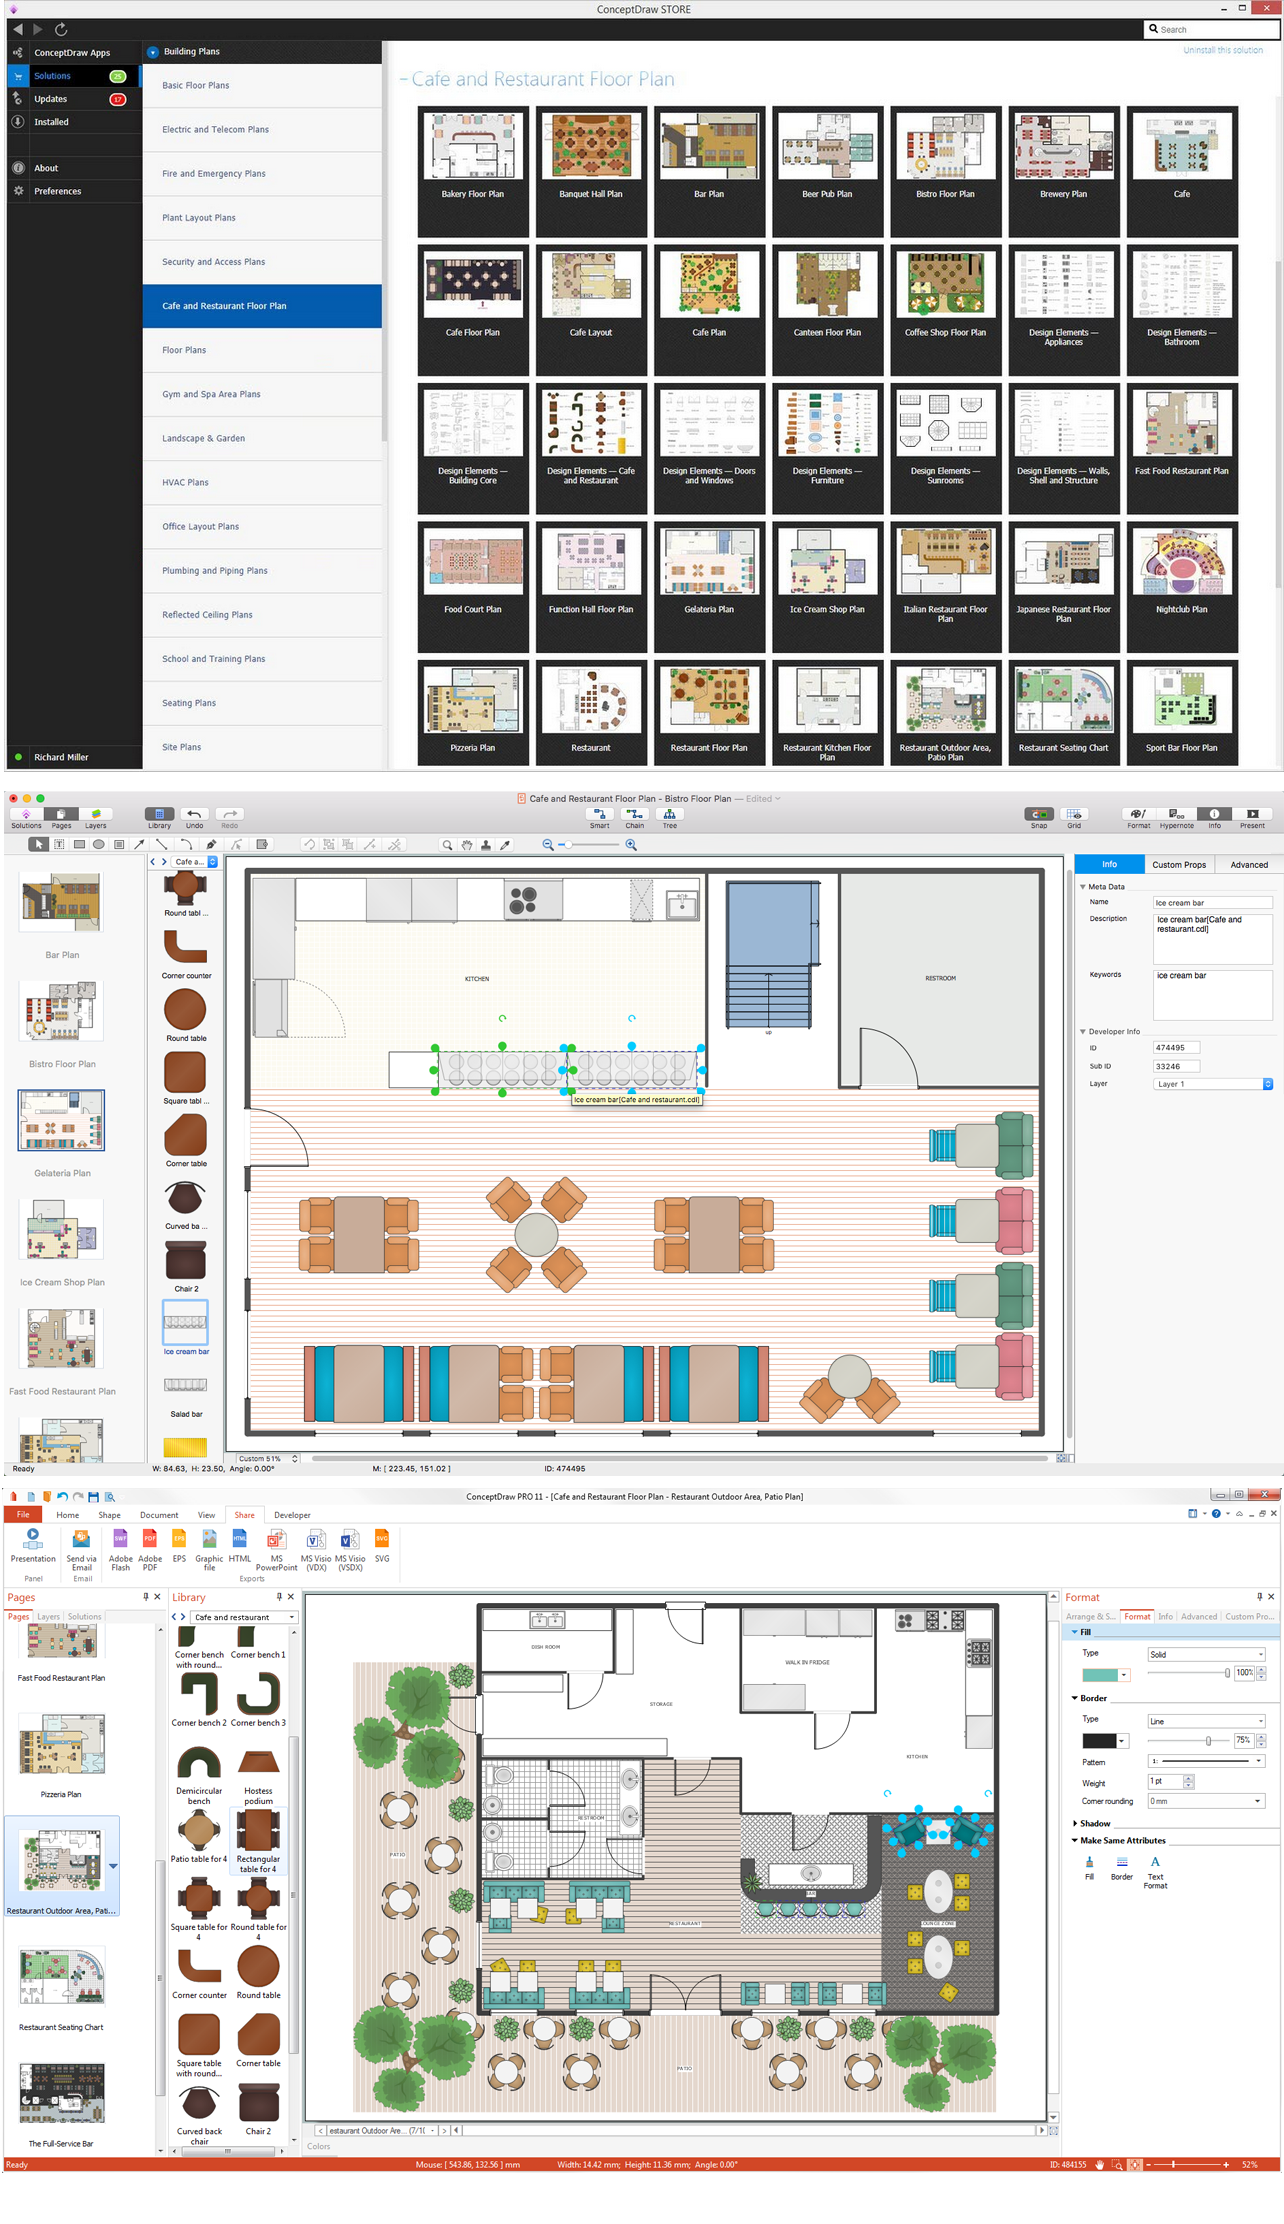 Restaurant floor plan software Floorplan software